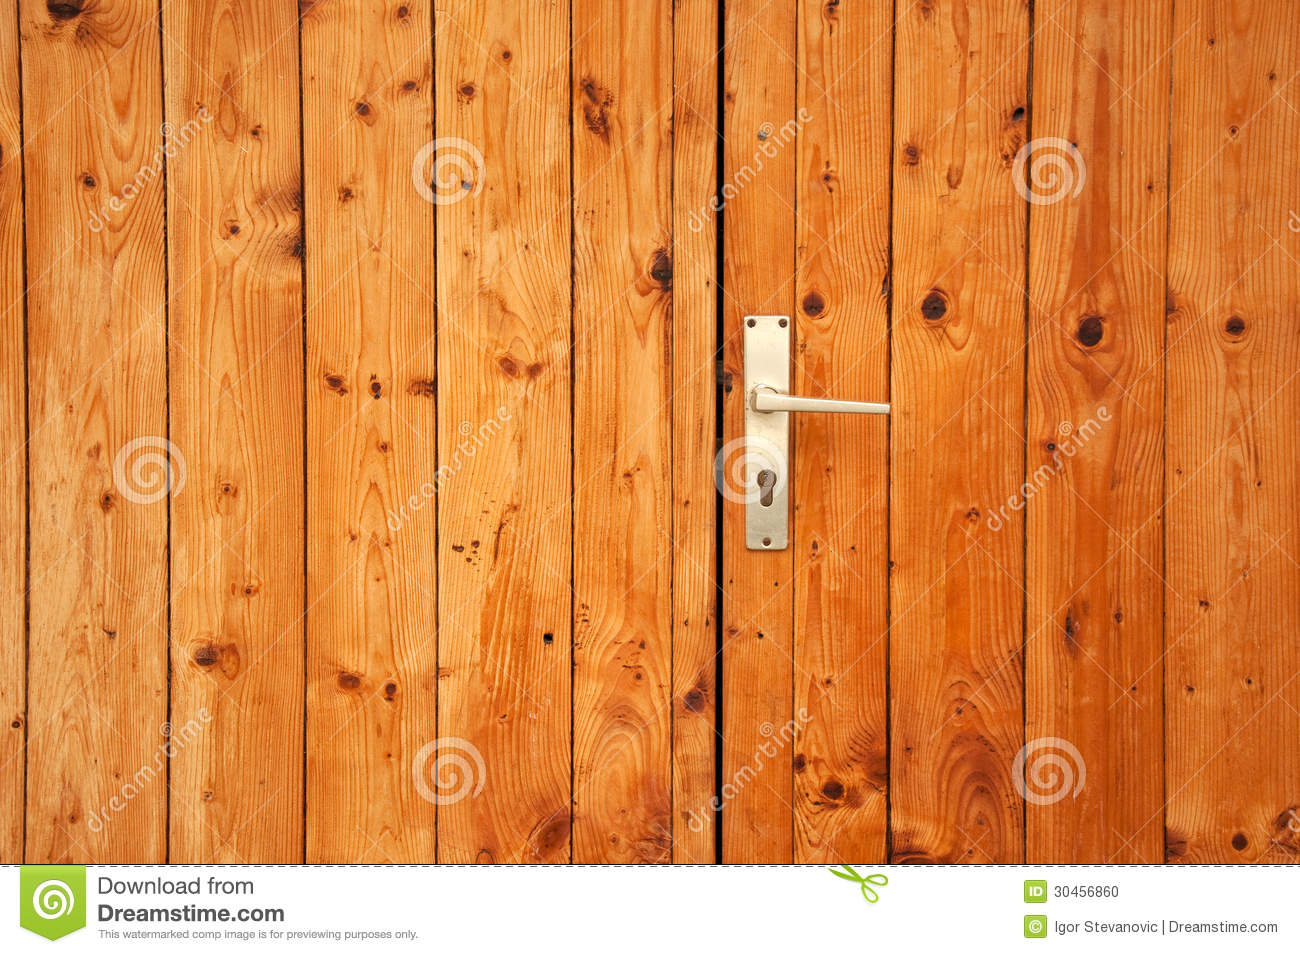 954 #BB4E10 Beautiful Wooden Door Entrance To The House Backyard. image Beautiful Wooden Doors 46731300